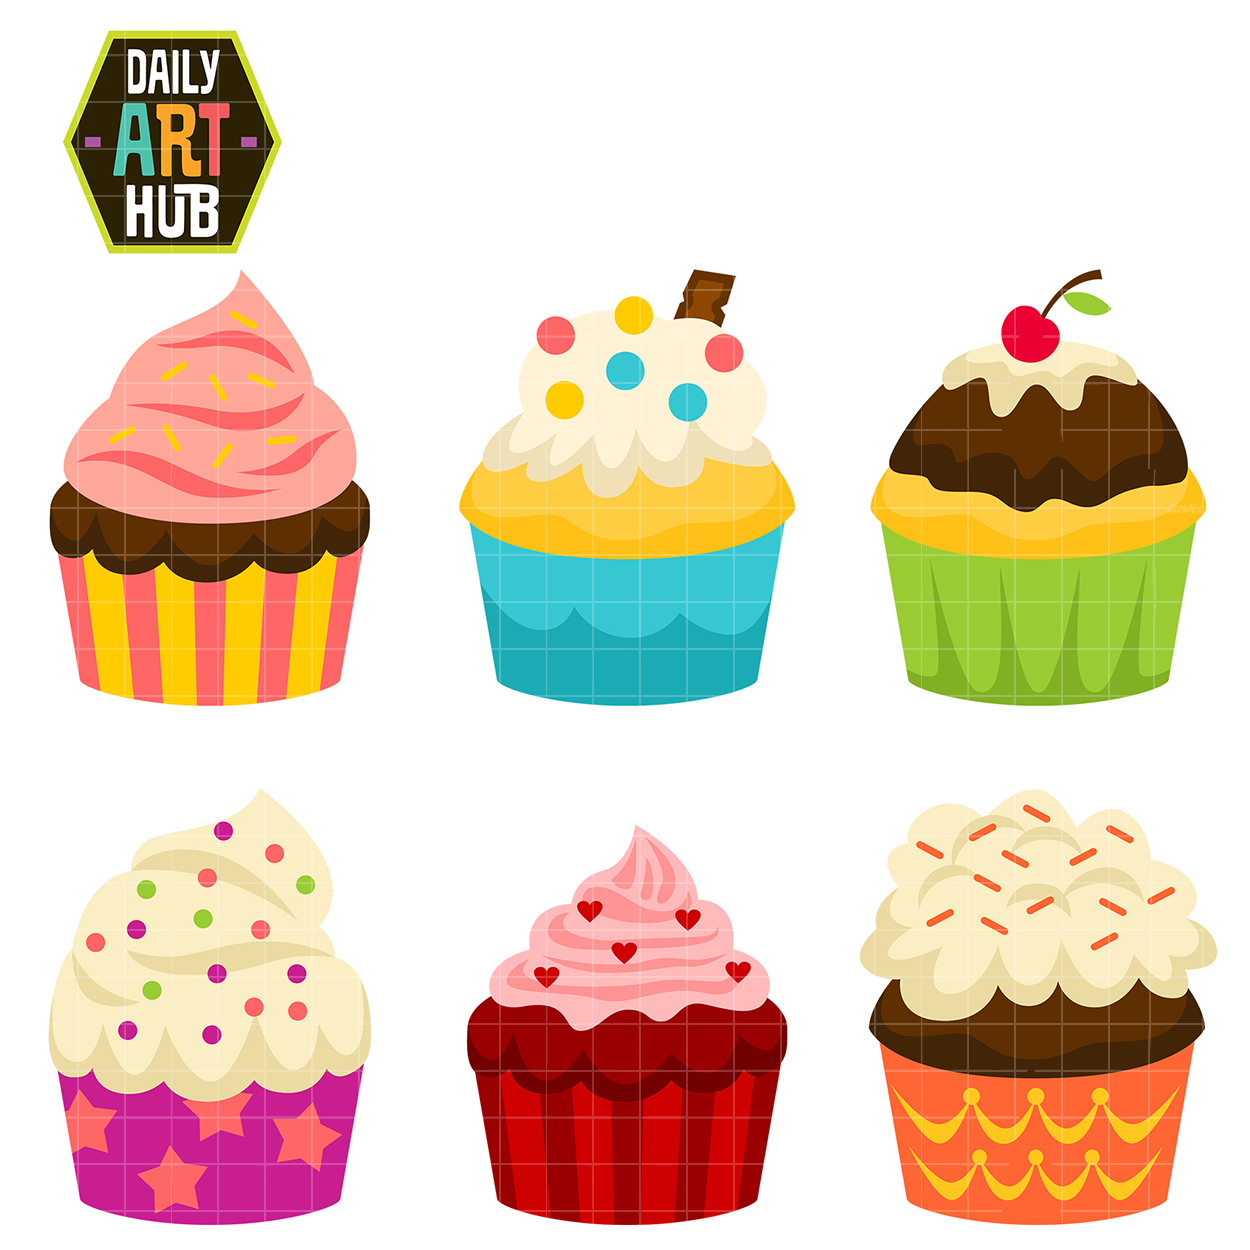 Cart clipart cupcake Daily Hub Cup Cakes Cup